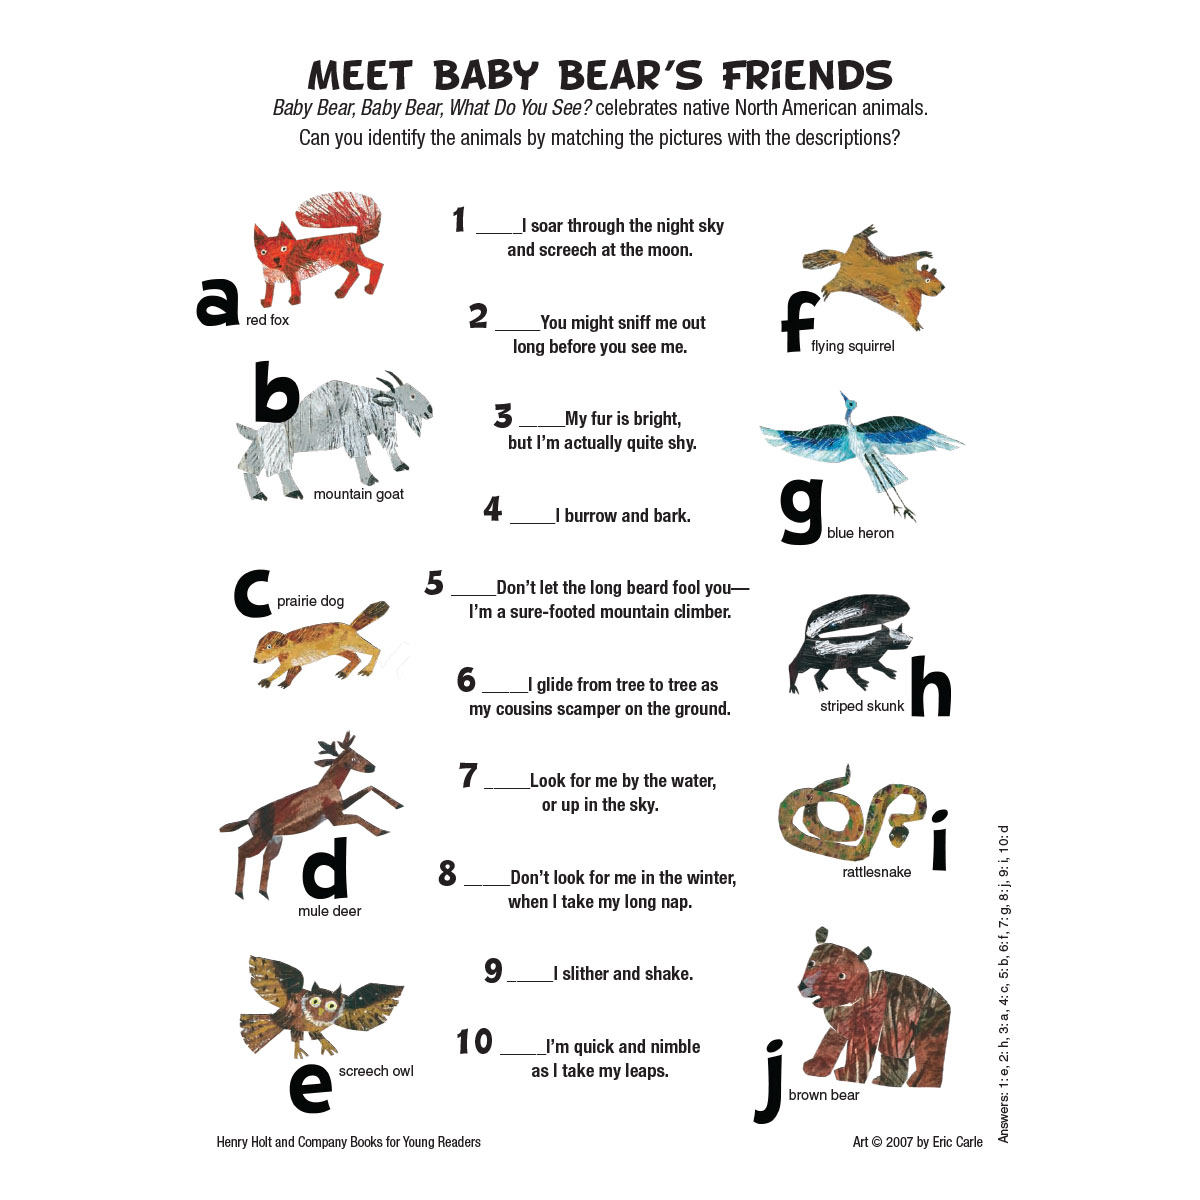 Baby Bear: Friends